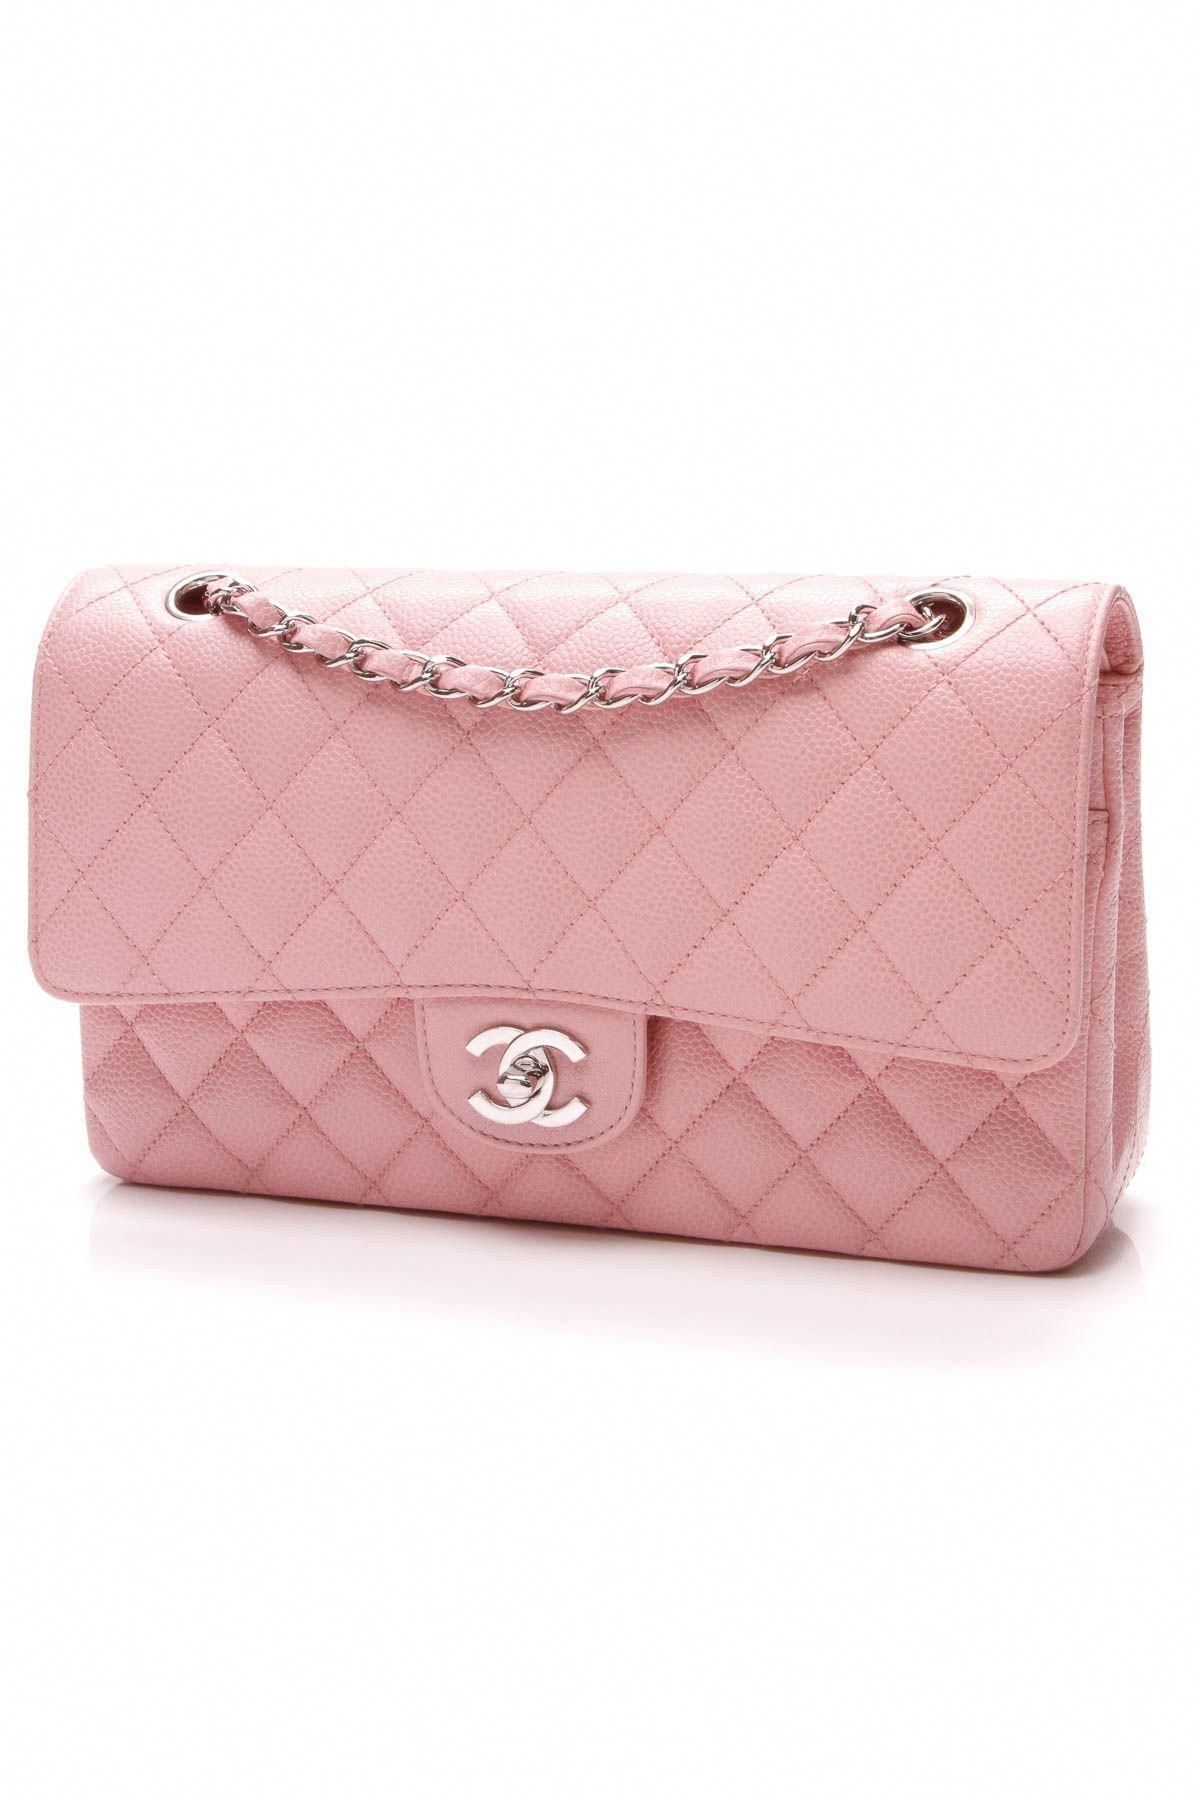 a7245c9c018e Chanel Pink Classic Double Flap Bag  chaneldoubleflap  Chanelhandbags